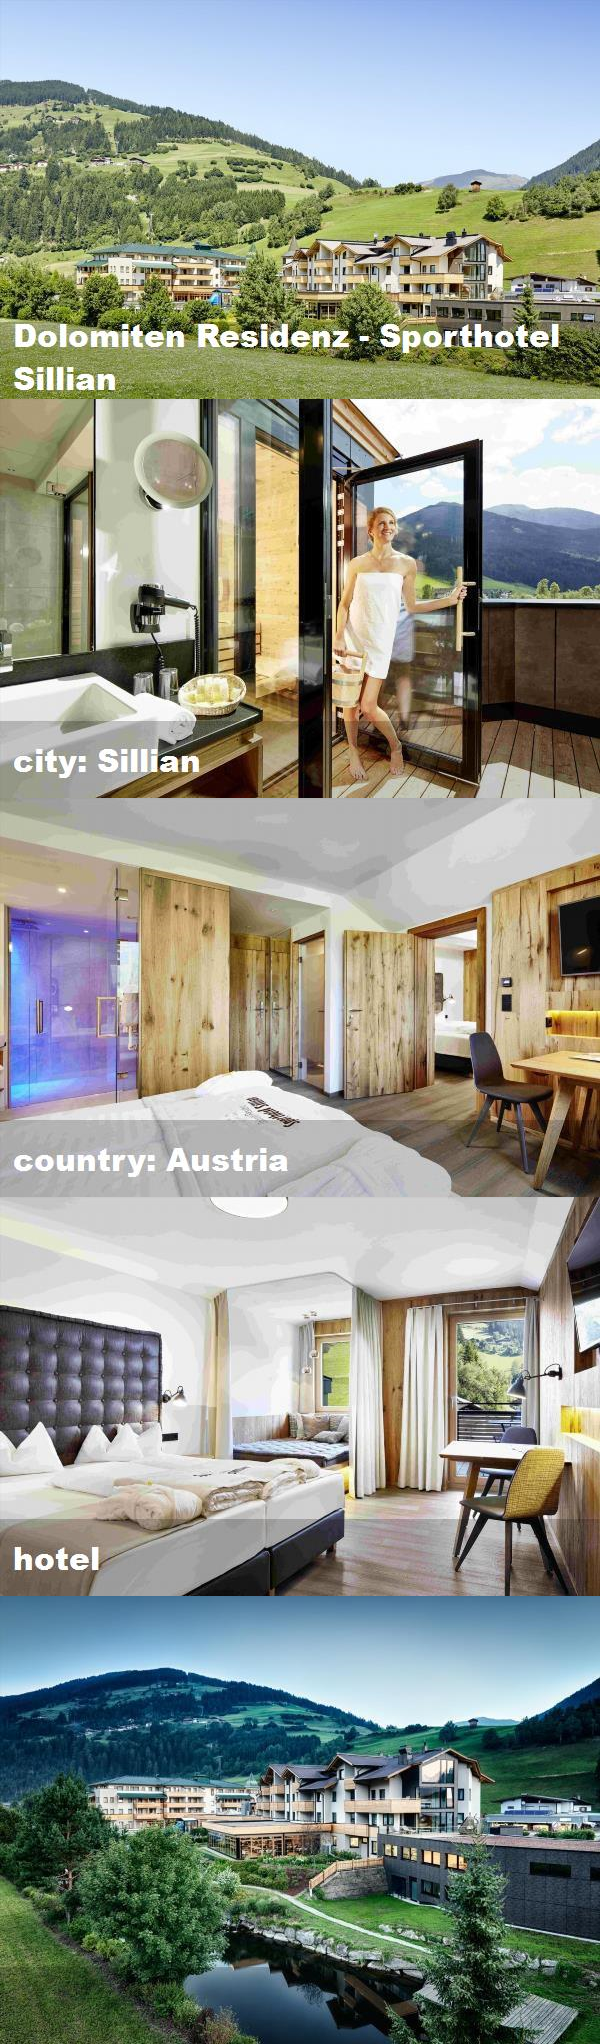 Sporthotel Sillian, Our Residence on the Austrian